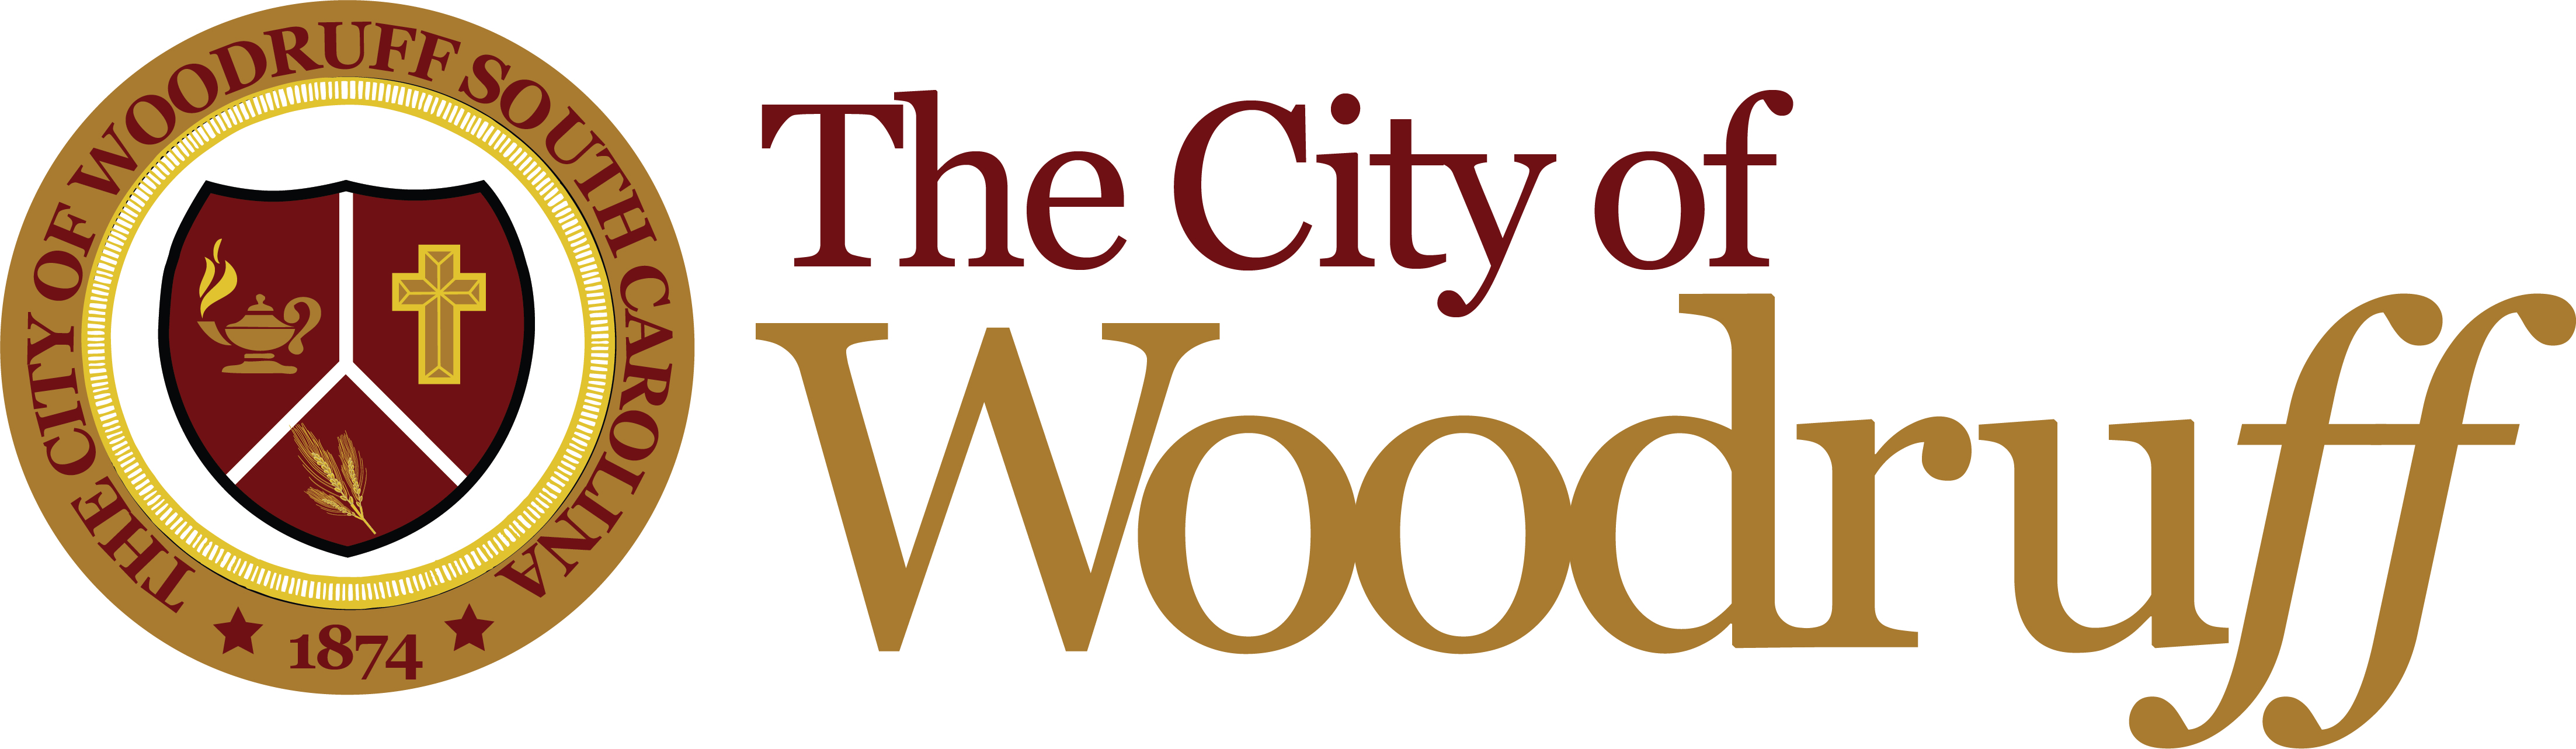 City of Woodruff